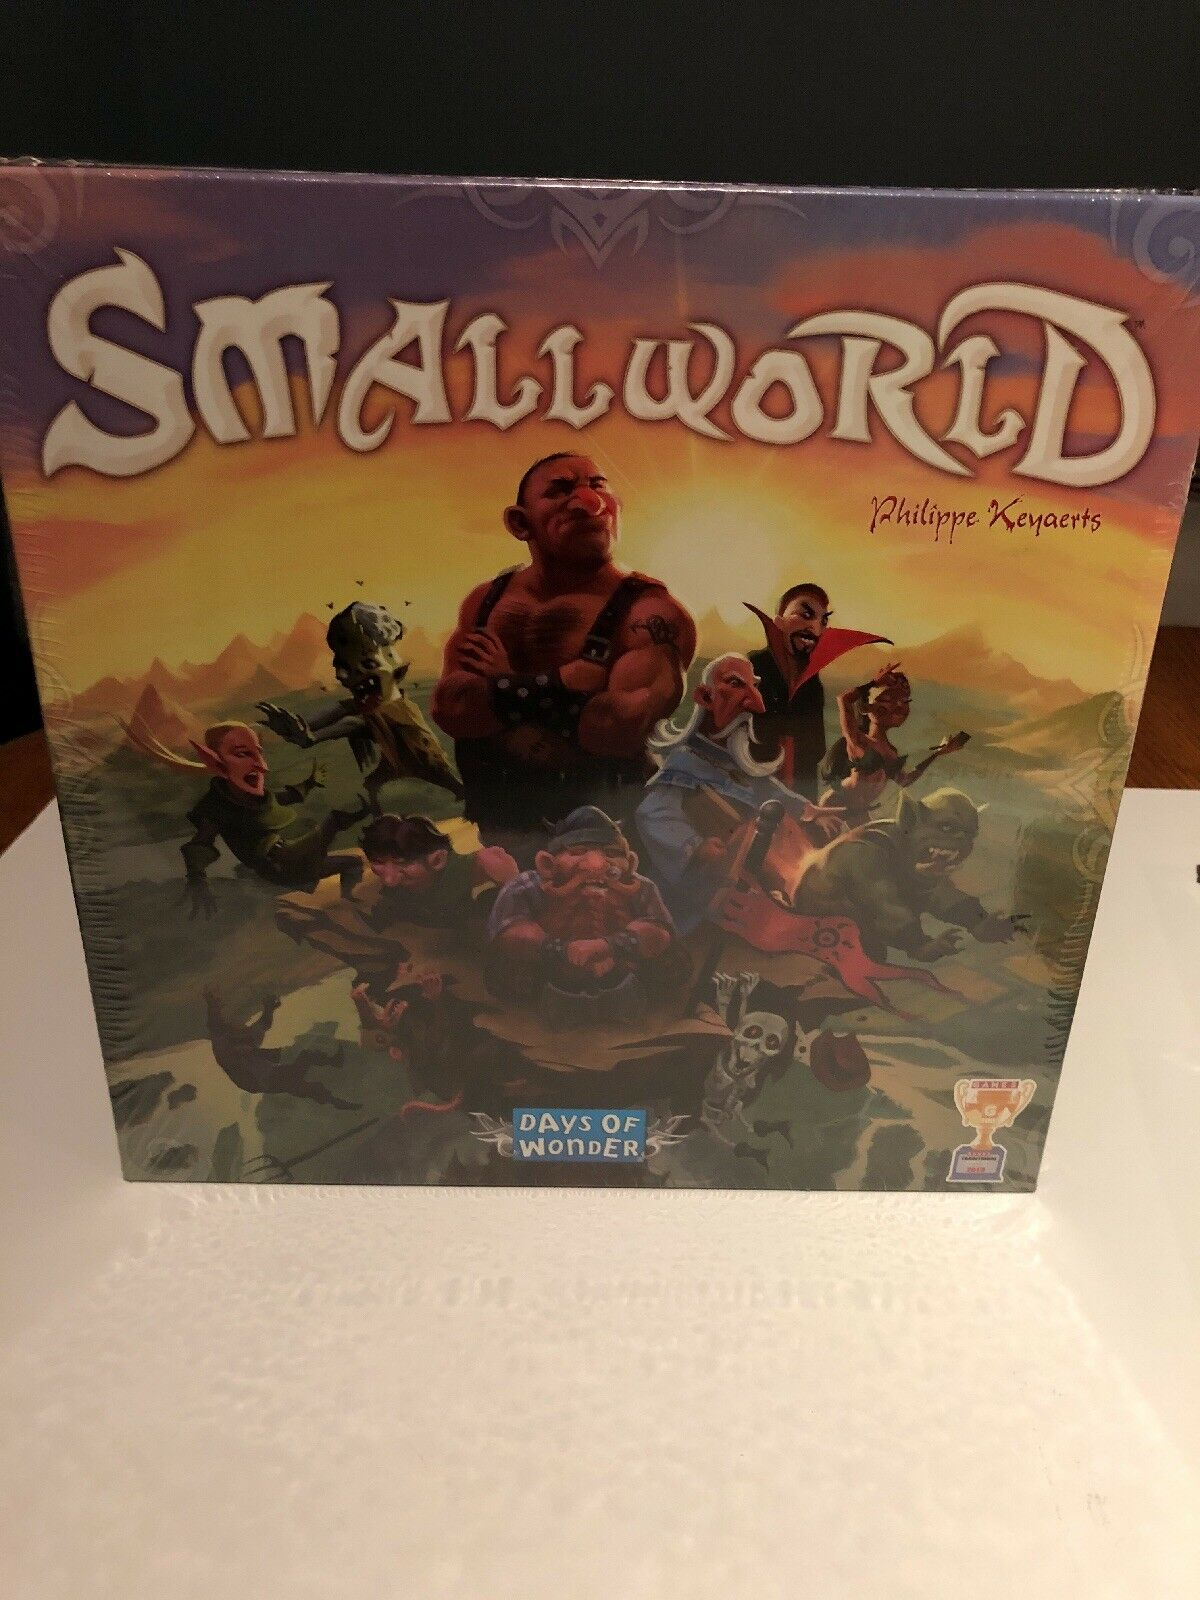 NEW- Small World Board Game Game Game Days Of Wonder DO7901 Fantasy Civilization- FREESHIP b8efd1